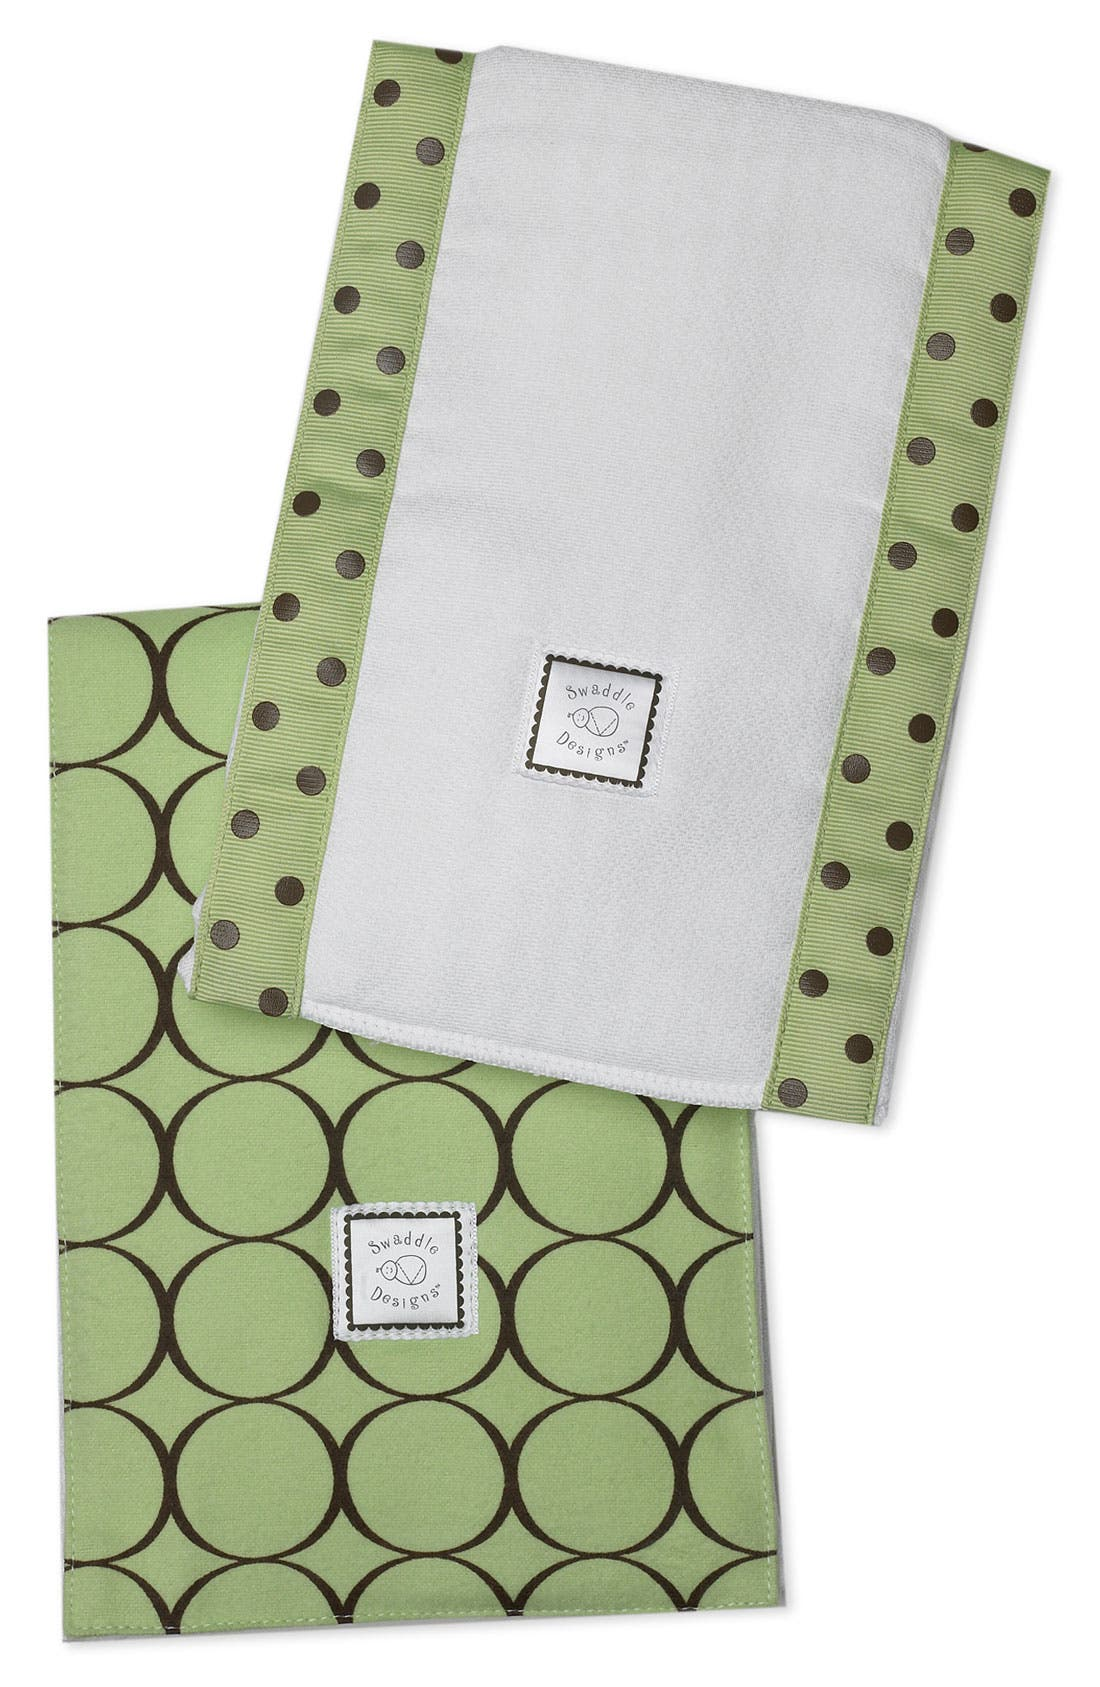 Main Image - Swaddle Designs Burp Cloth Set